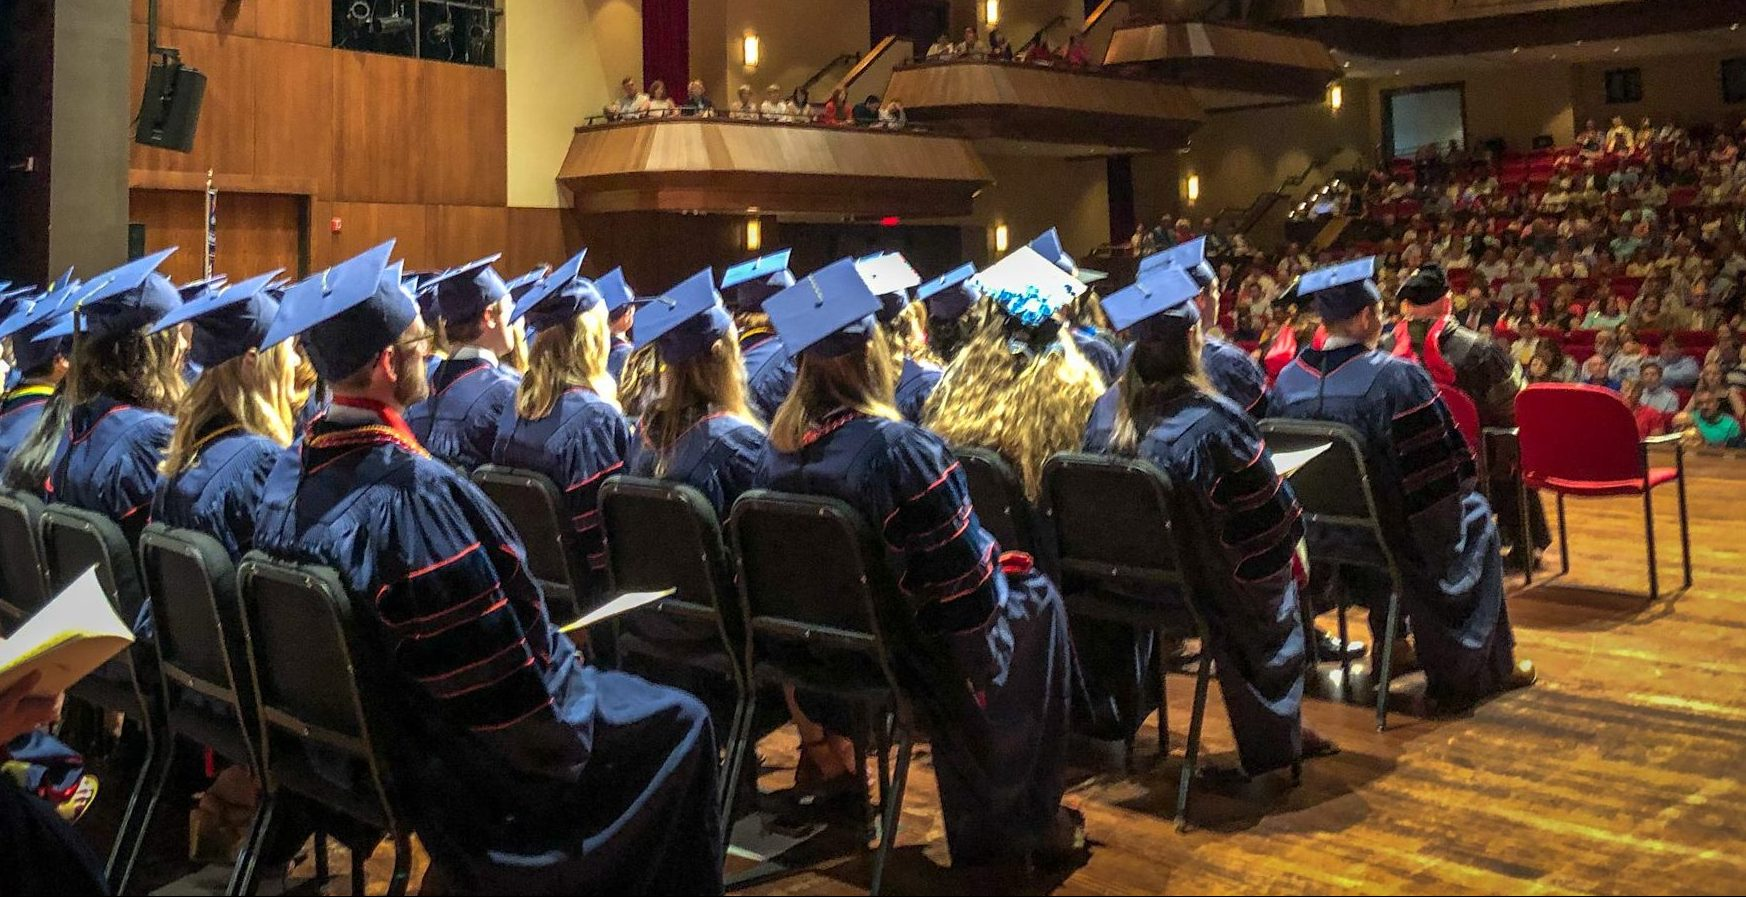 Graduates in cap and gown sit on the stage and look out into crowd